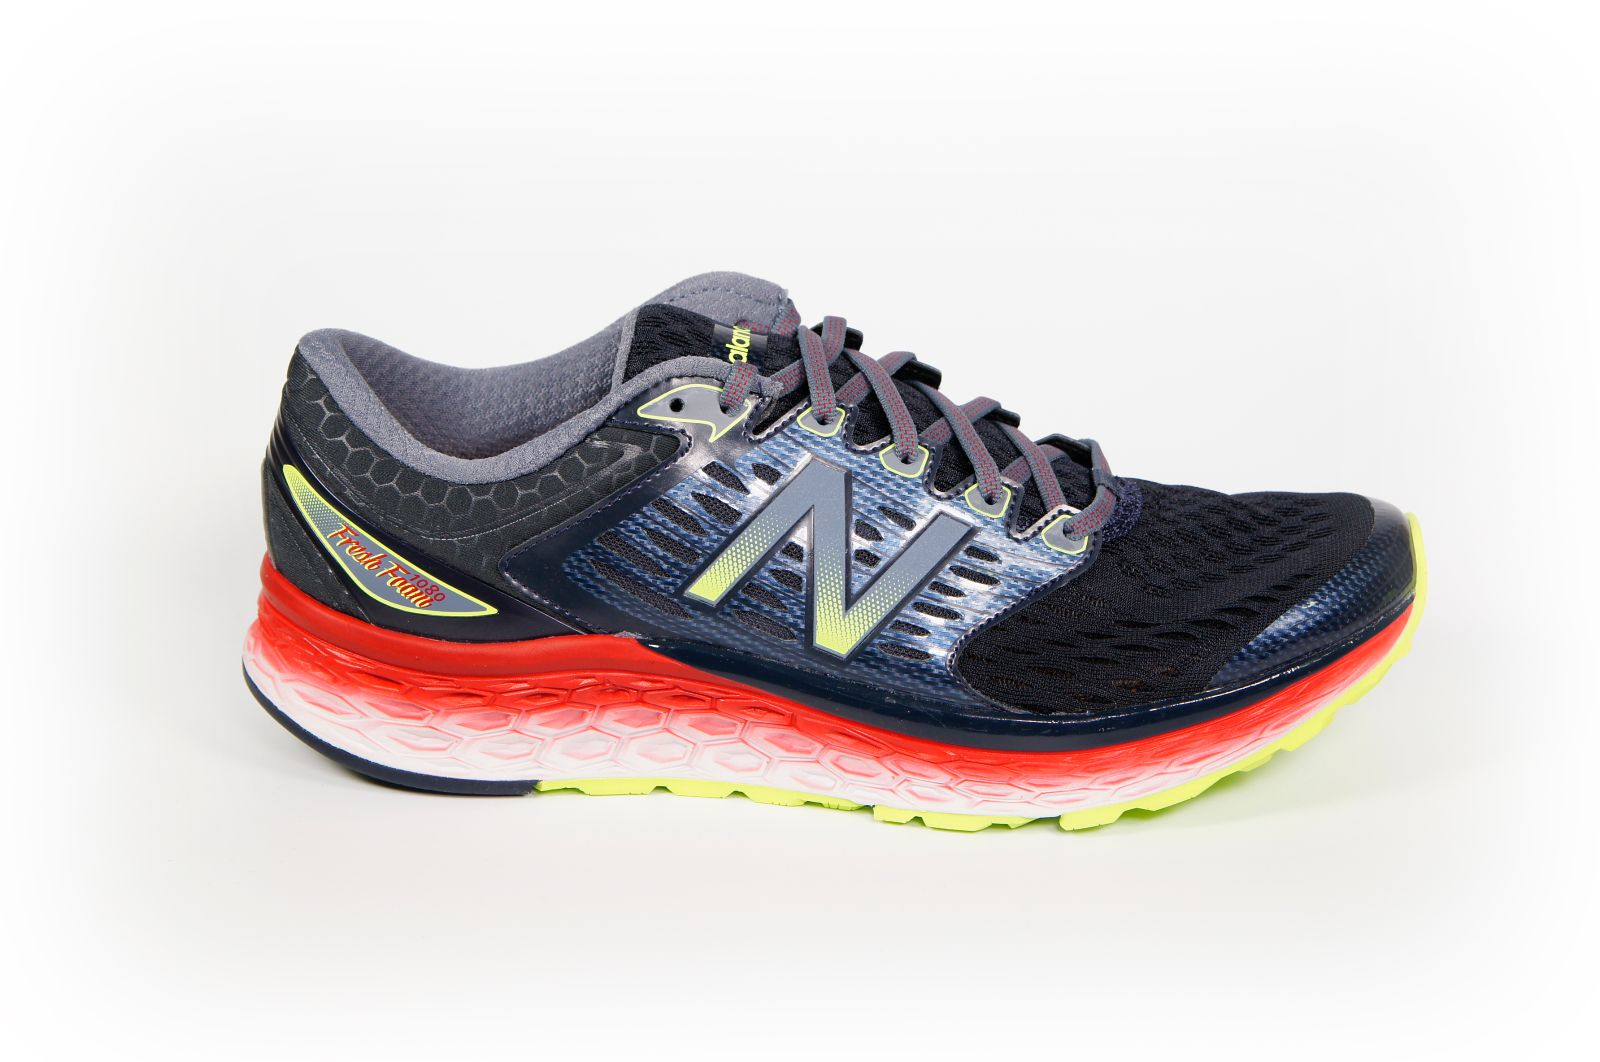 New Balance Fresh Foam 1080 v6